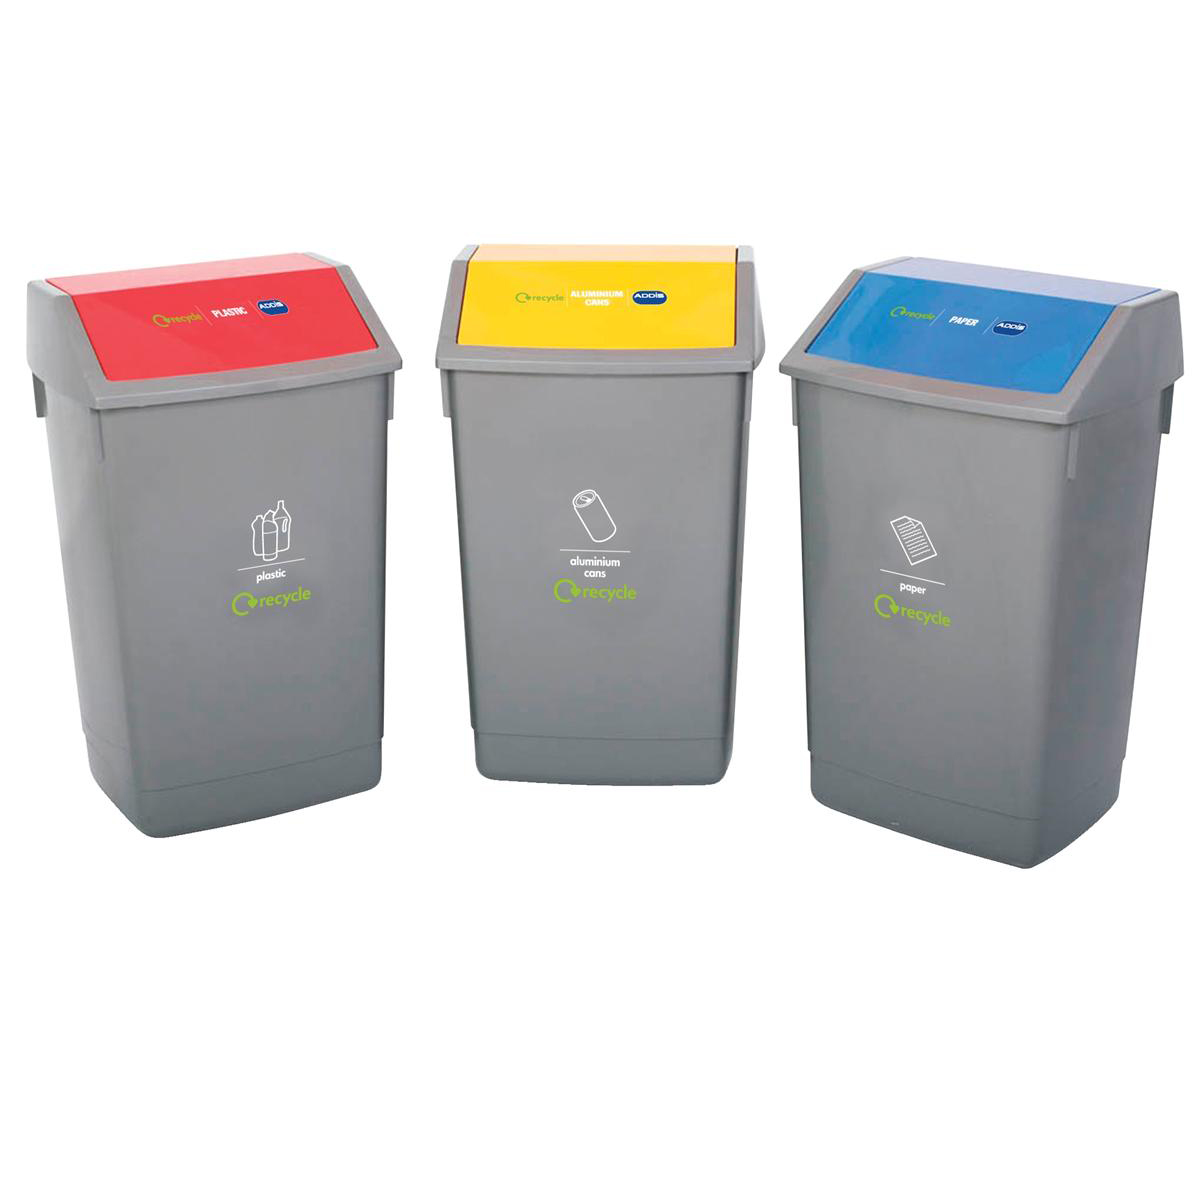 Recycling Bins Recycle Bin Kit 3x 60 Litre Bins with Colour Coded Lids Flip Top Ref 505576 Pack 3